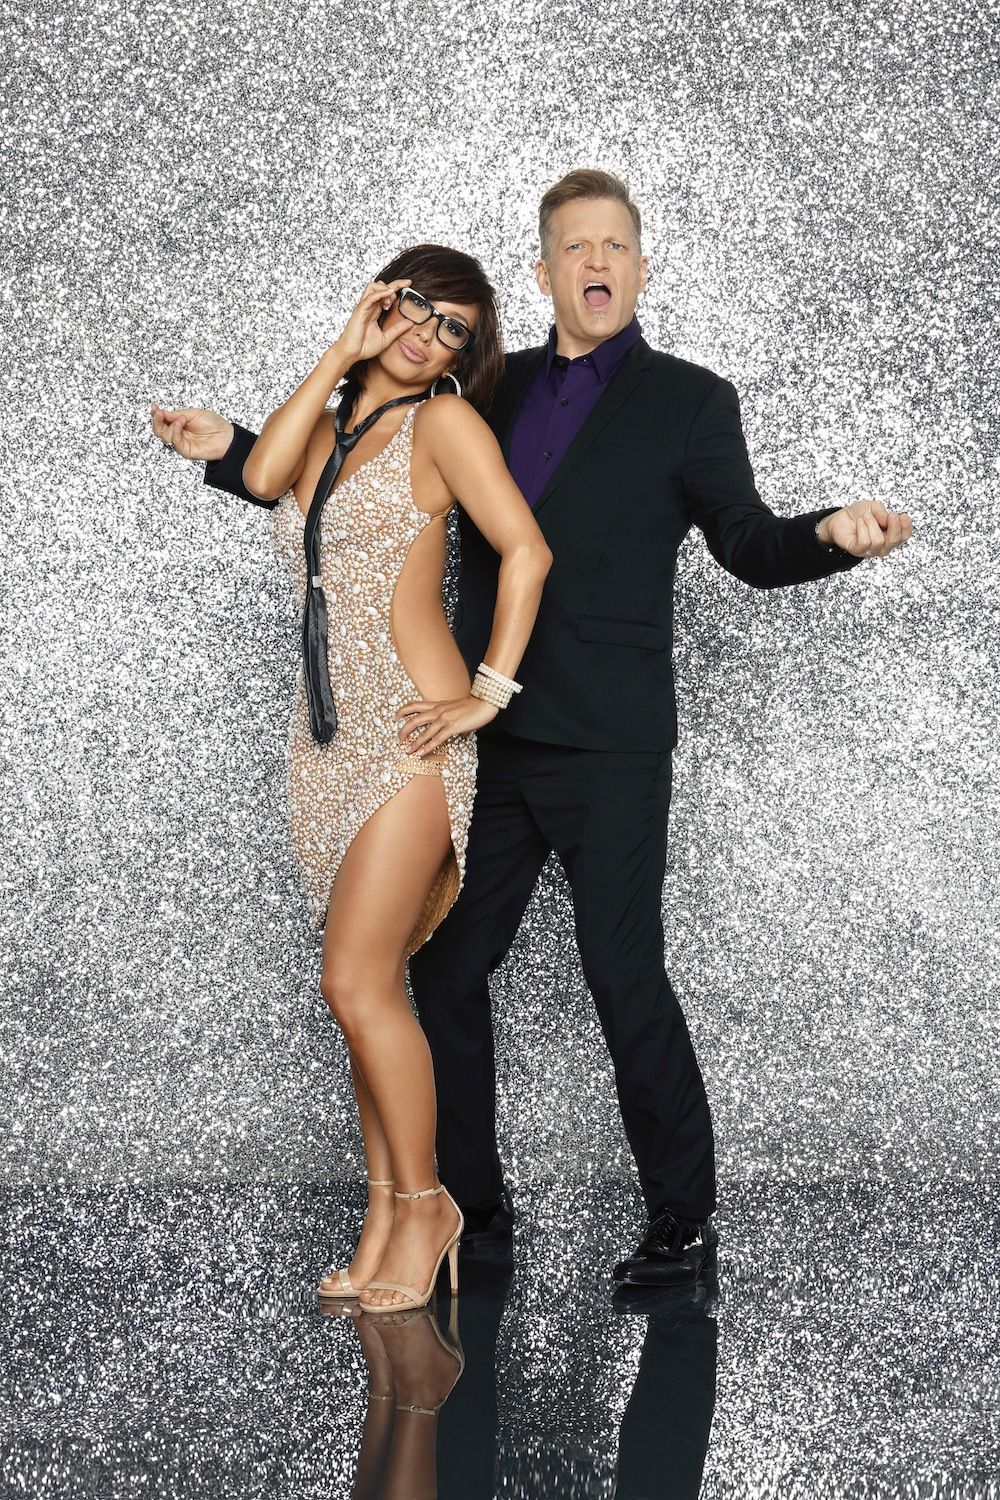 Drew Carey and Cheryl Burke Dancing Partners on DWTS18!